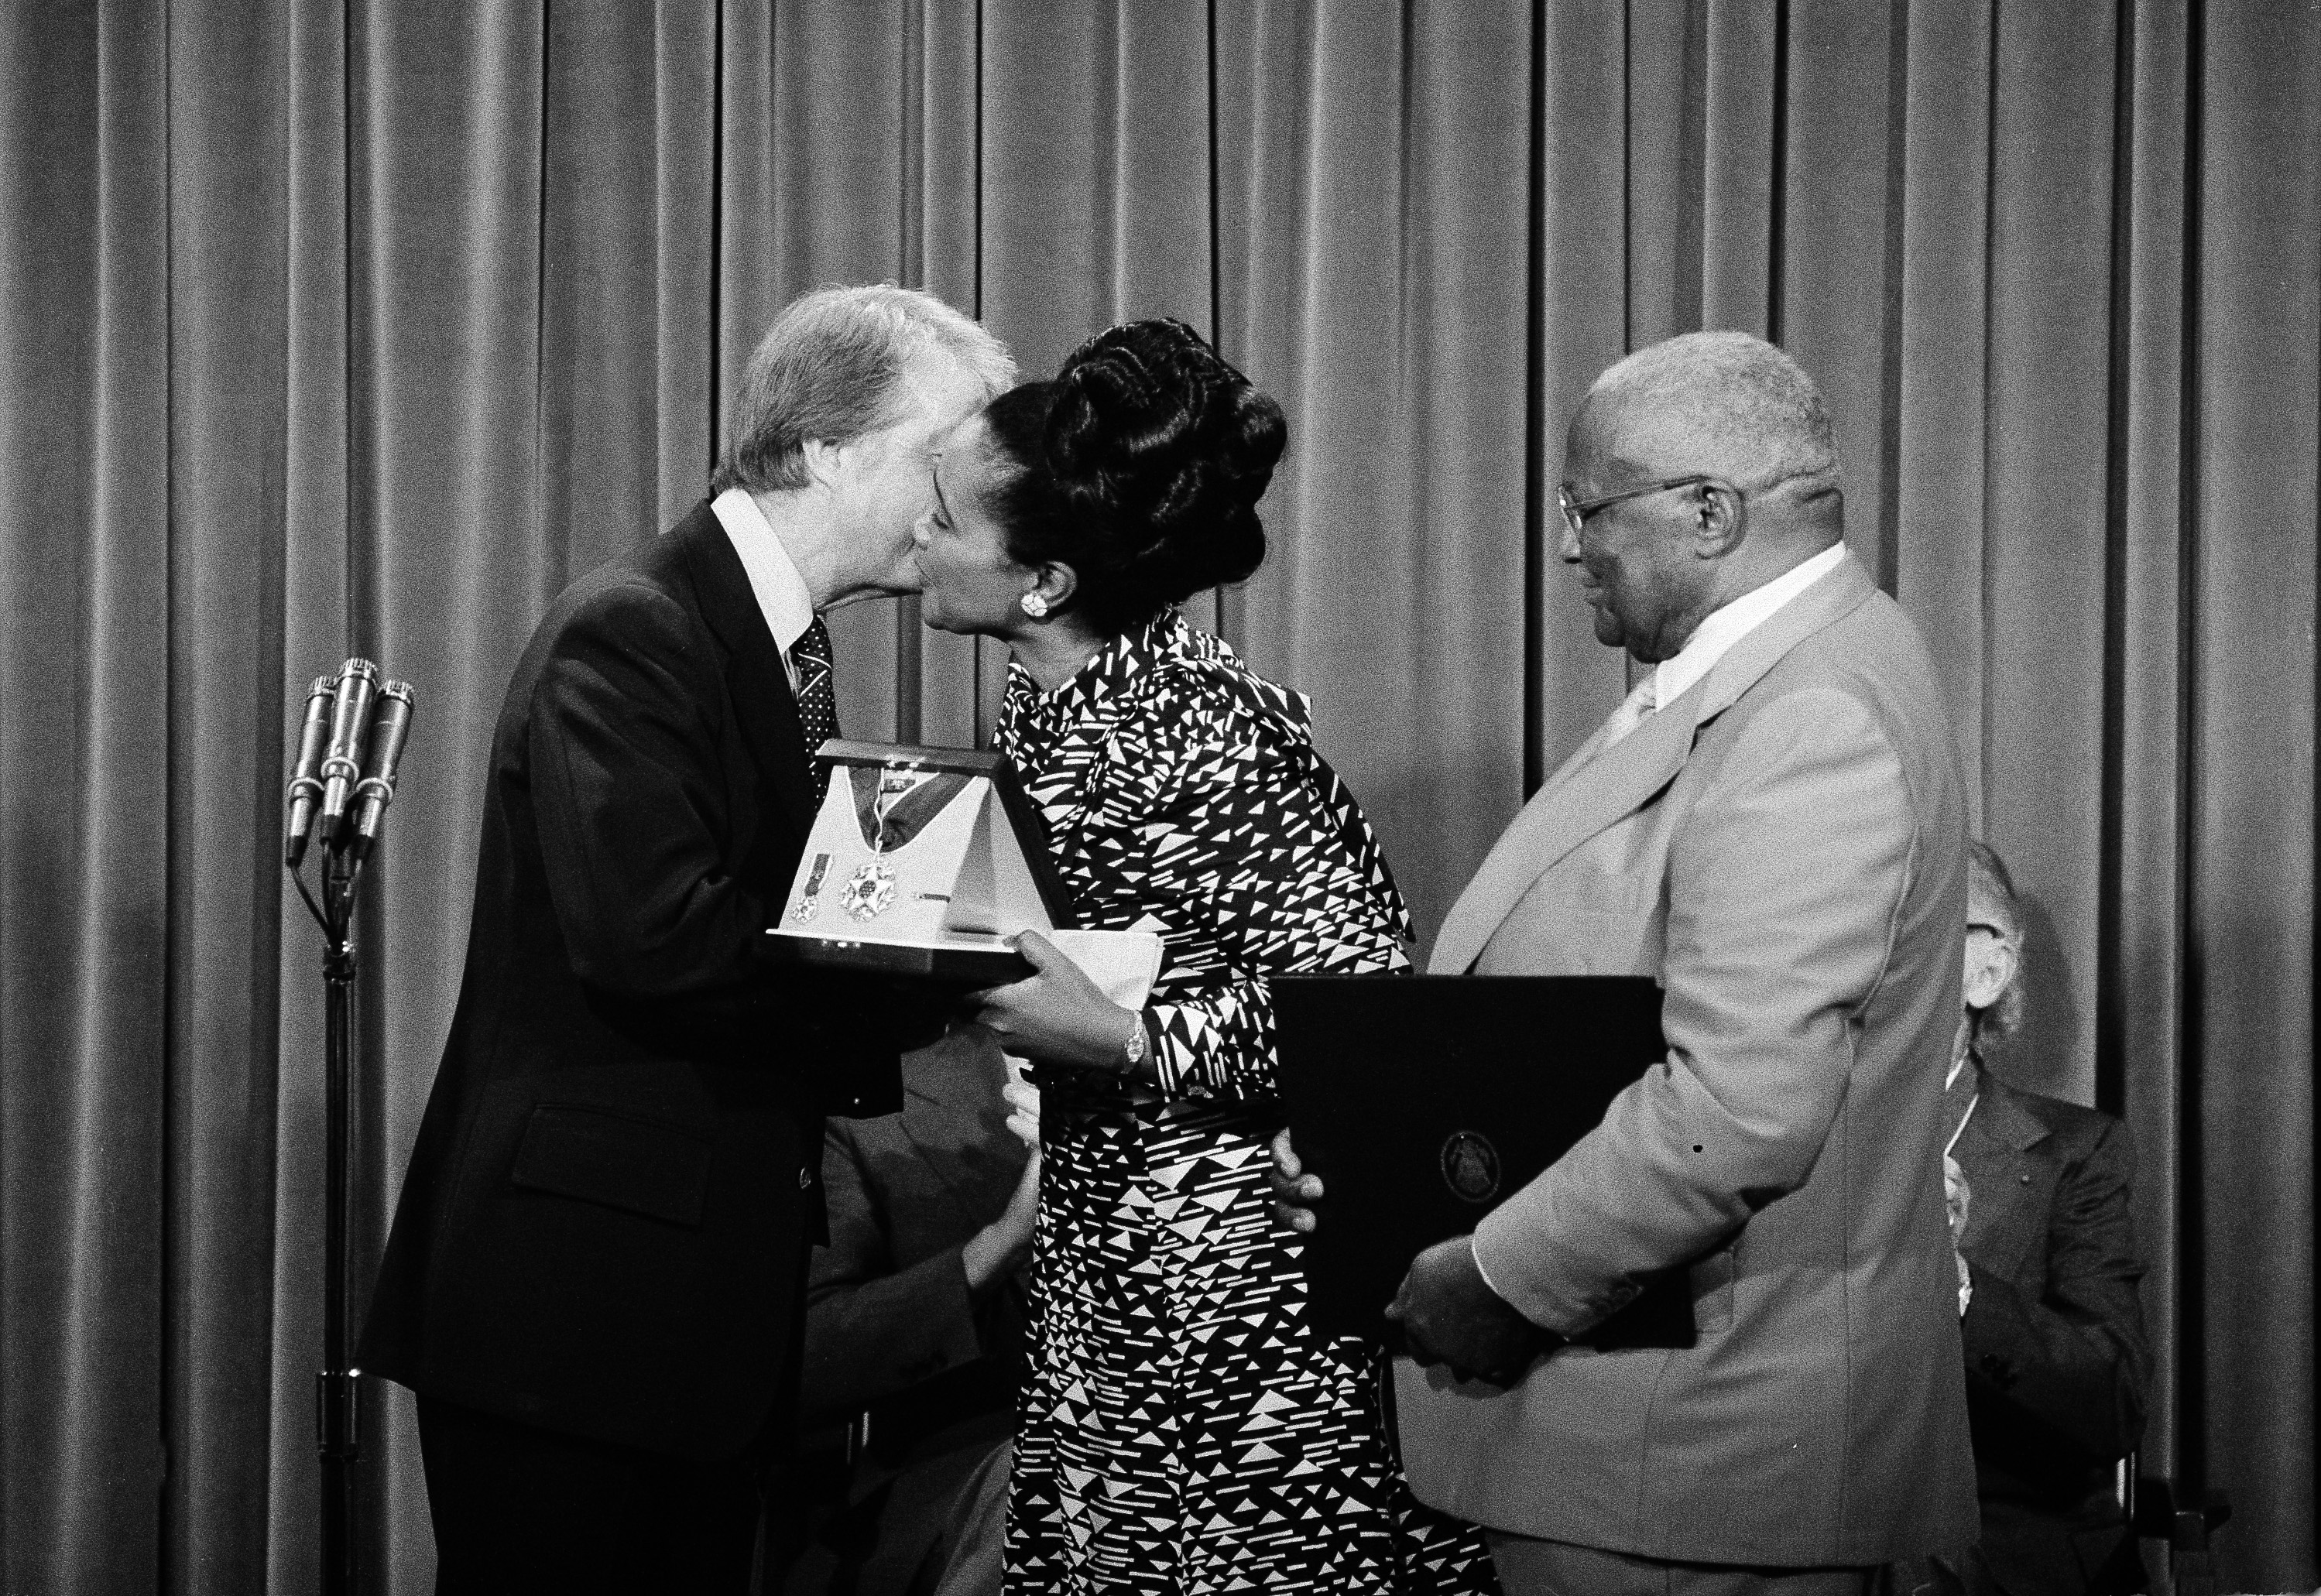 President Carter kisses Coretta Scott King, widow of civil rights leader Dr. Martin Luther King, Jr., at the White House, July 12, 1977, after he presented the Medal of Freedom to her on behalf of her late husband.